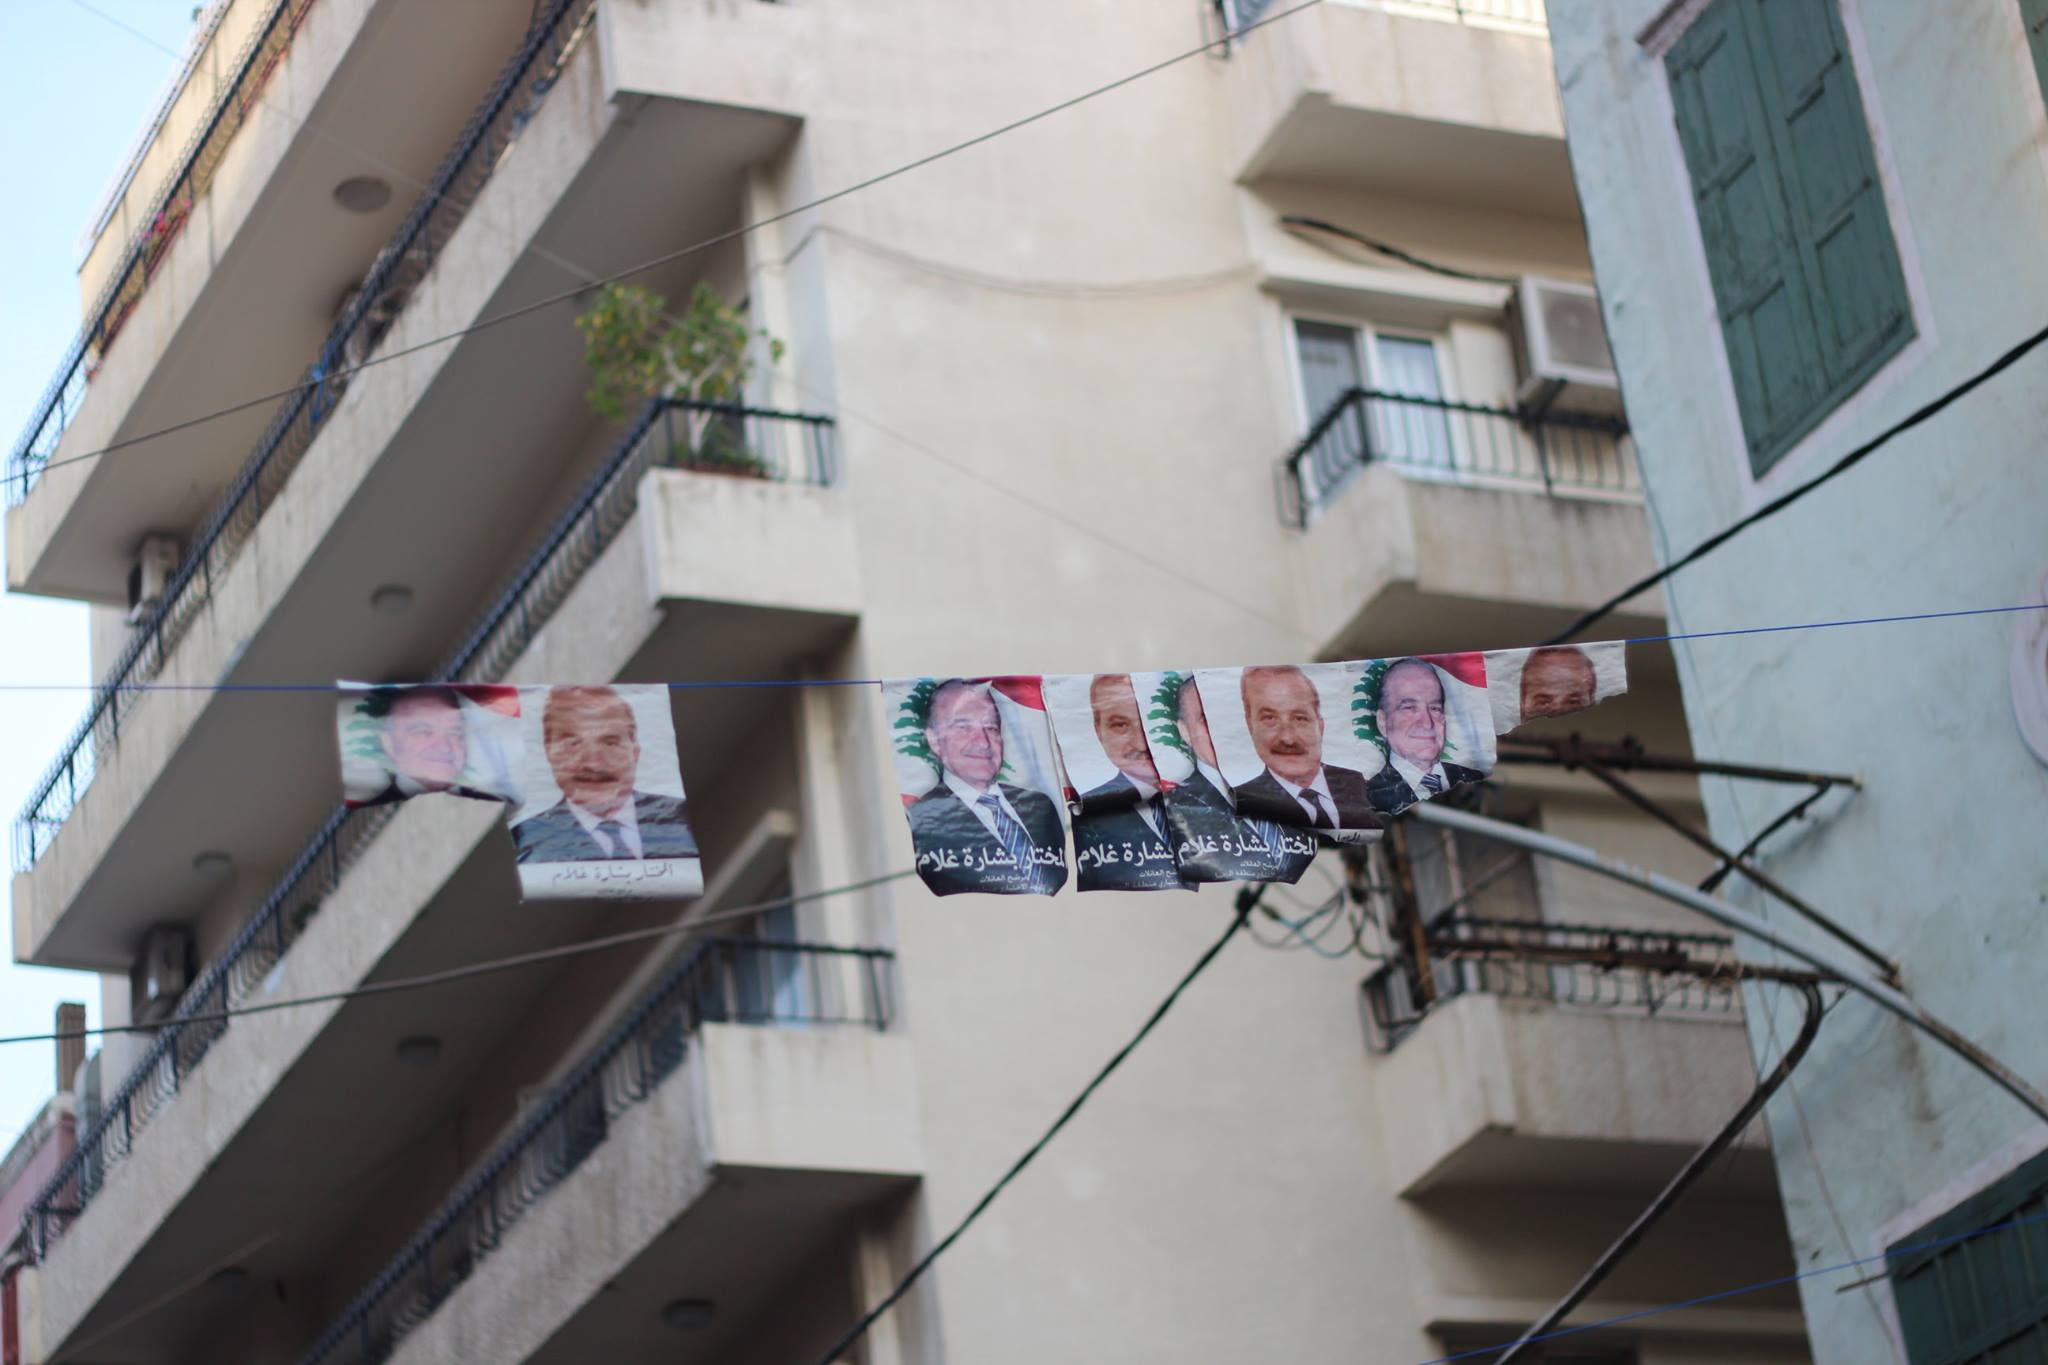 Candidates for the Beirut elections. Photo: The Turban Times